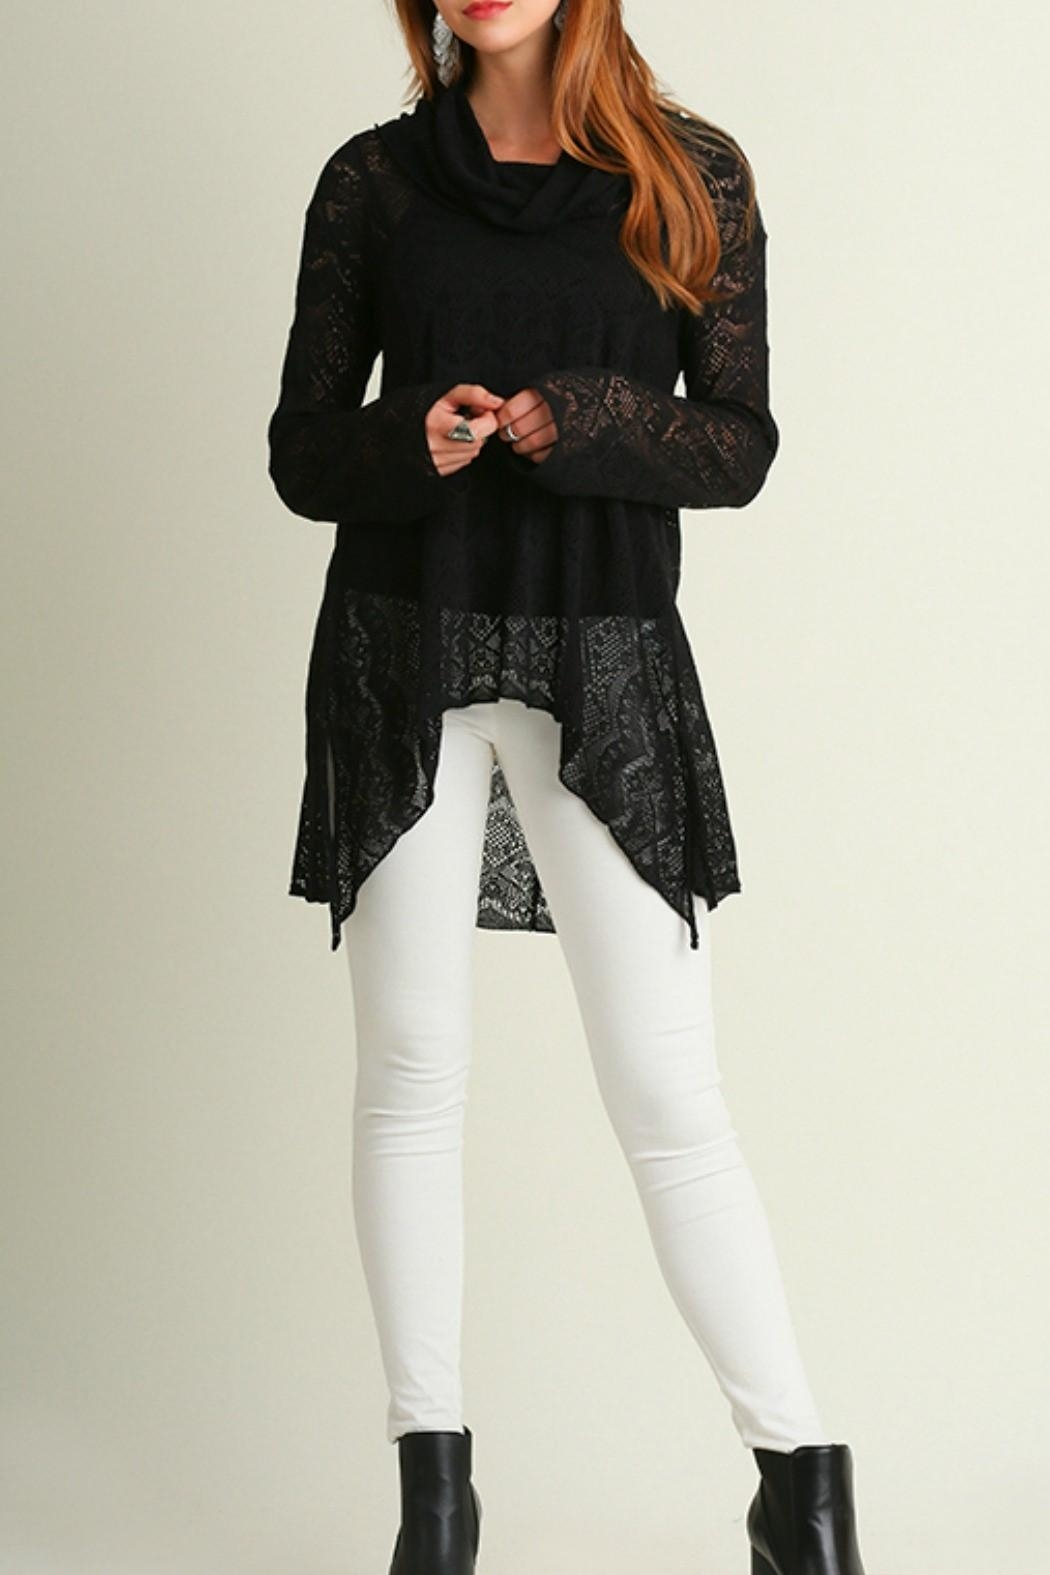 Umgee USA Black Lace Sweater - Main Image